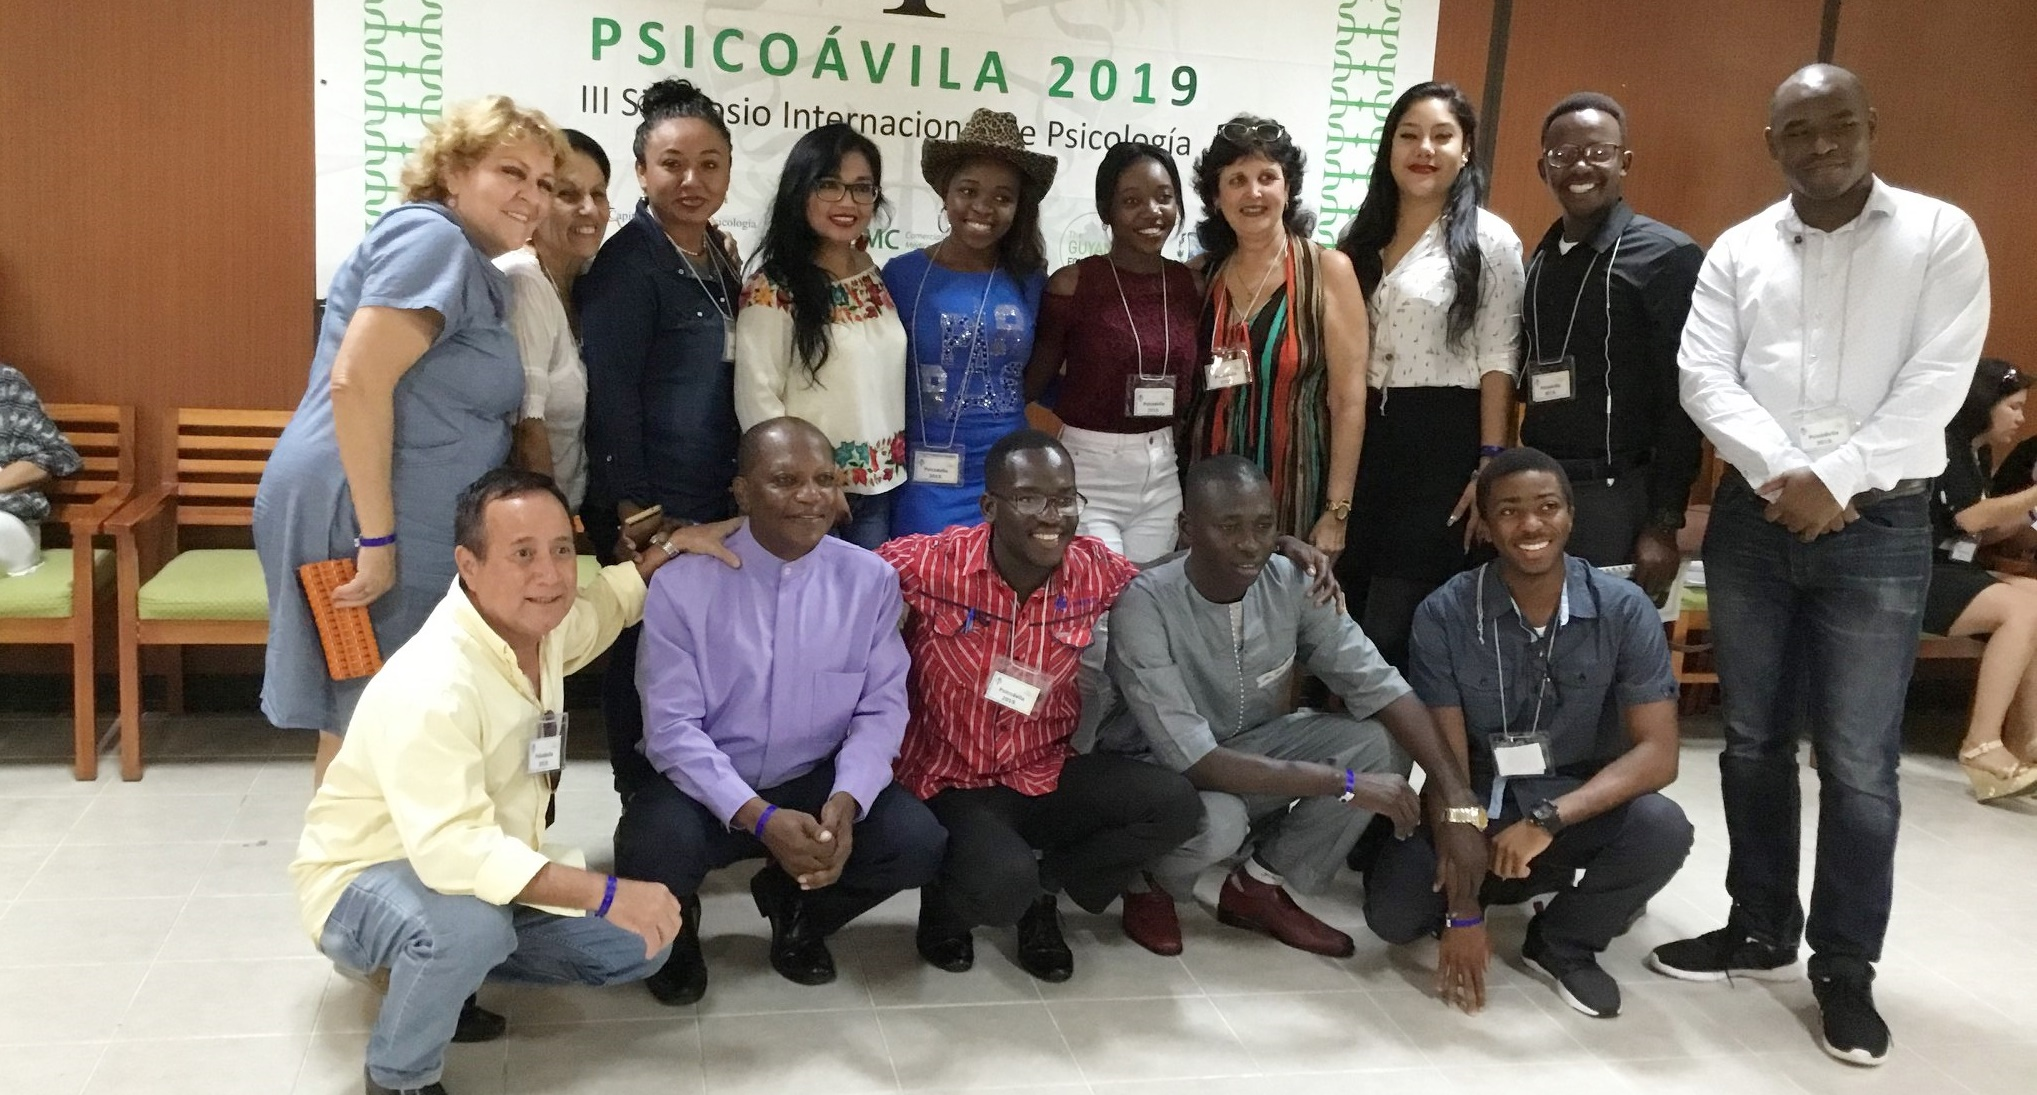 Mental Health Conference in Cuba, March 2019